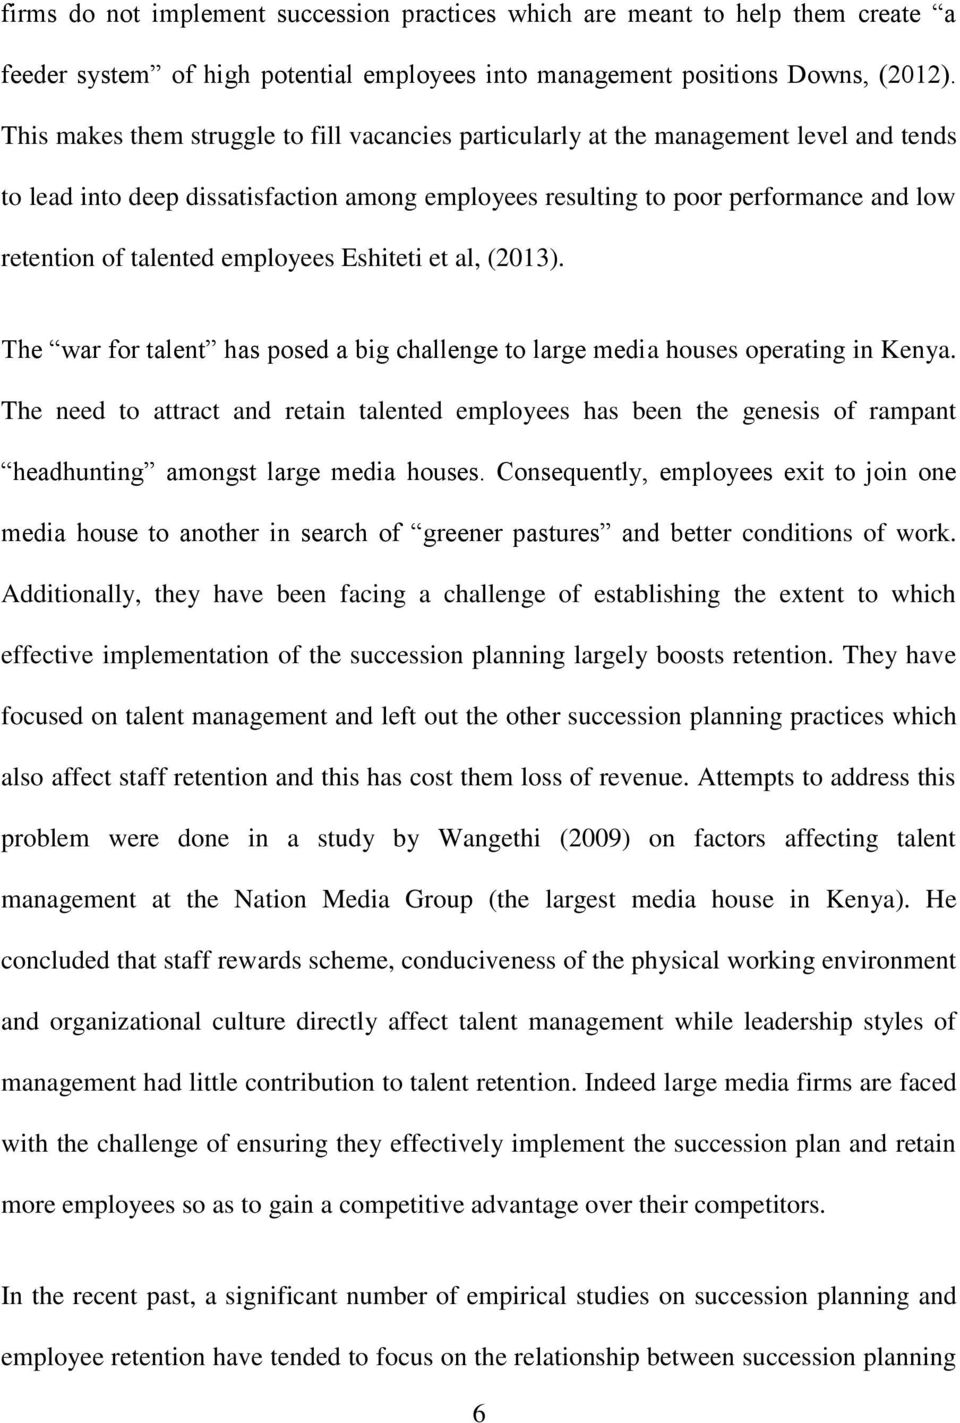 employees Eshiteti et al, (2013). The war for talent has posed a big challenge to large media houses operating in Kenya.